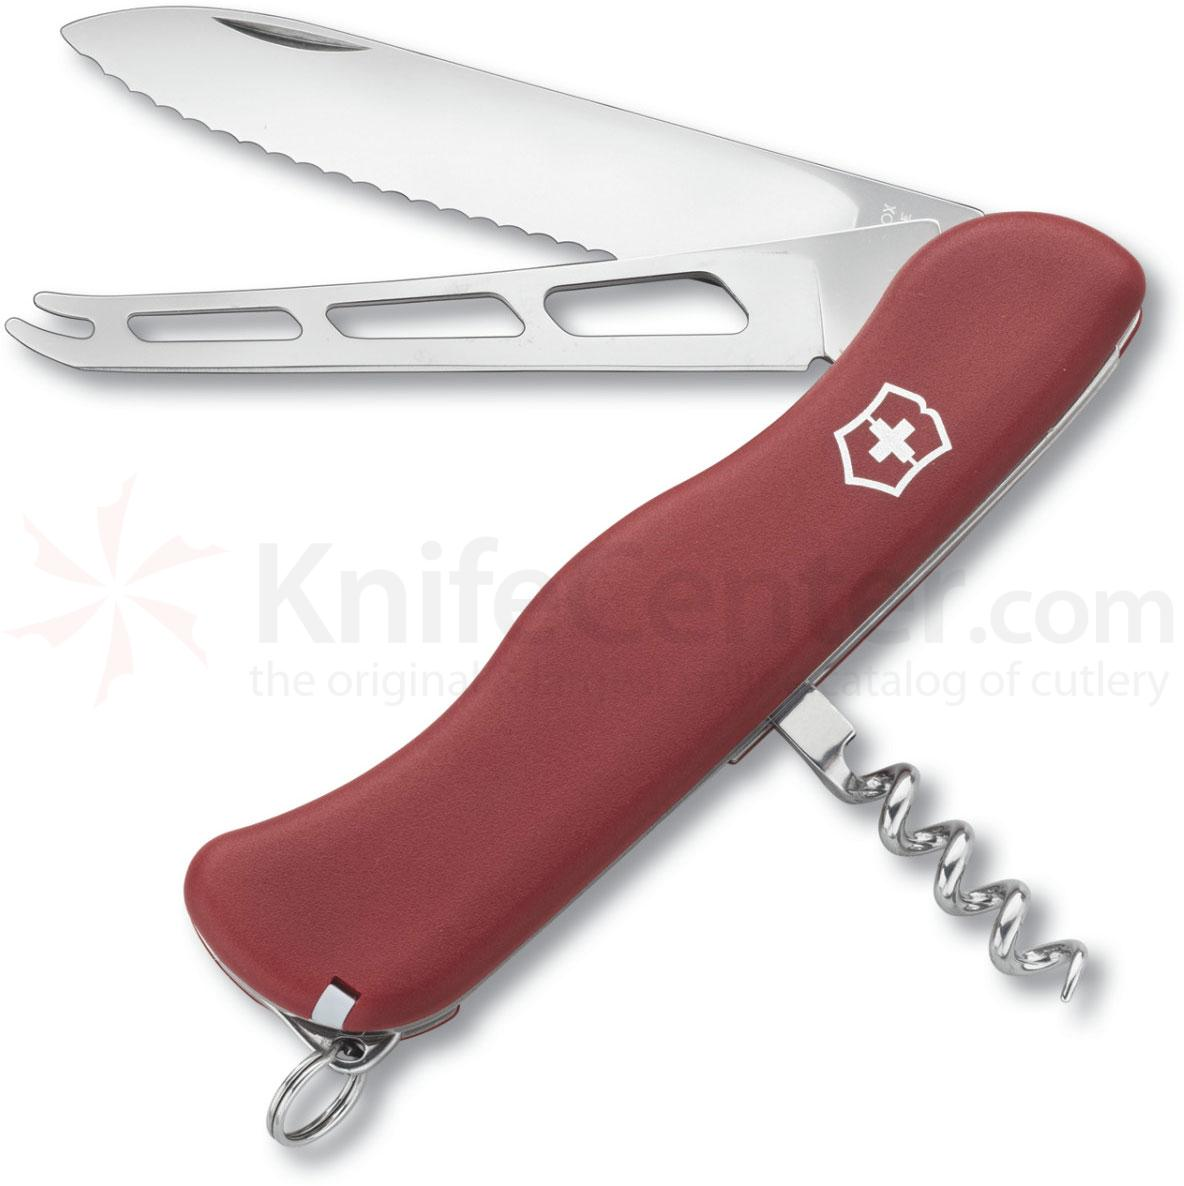 Victorinox Swiss Army 80833 Cheese Knife, 4-3/8 inch Red Handles